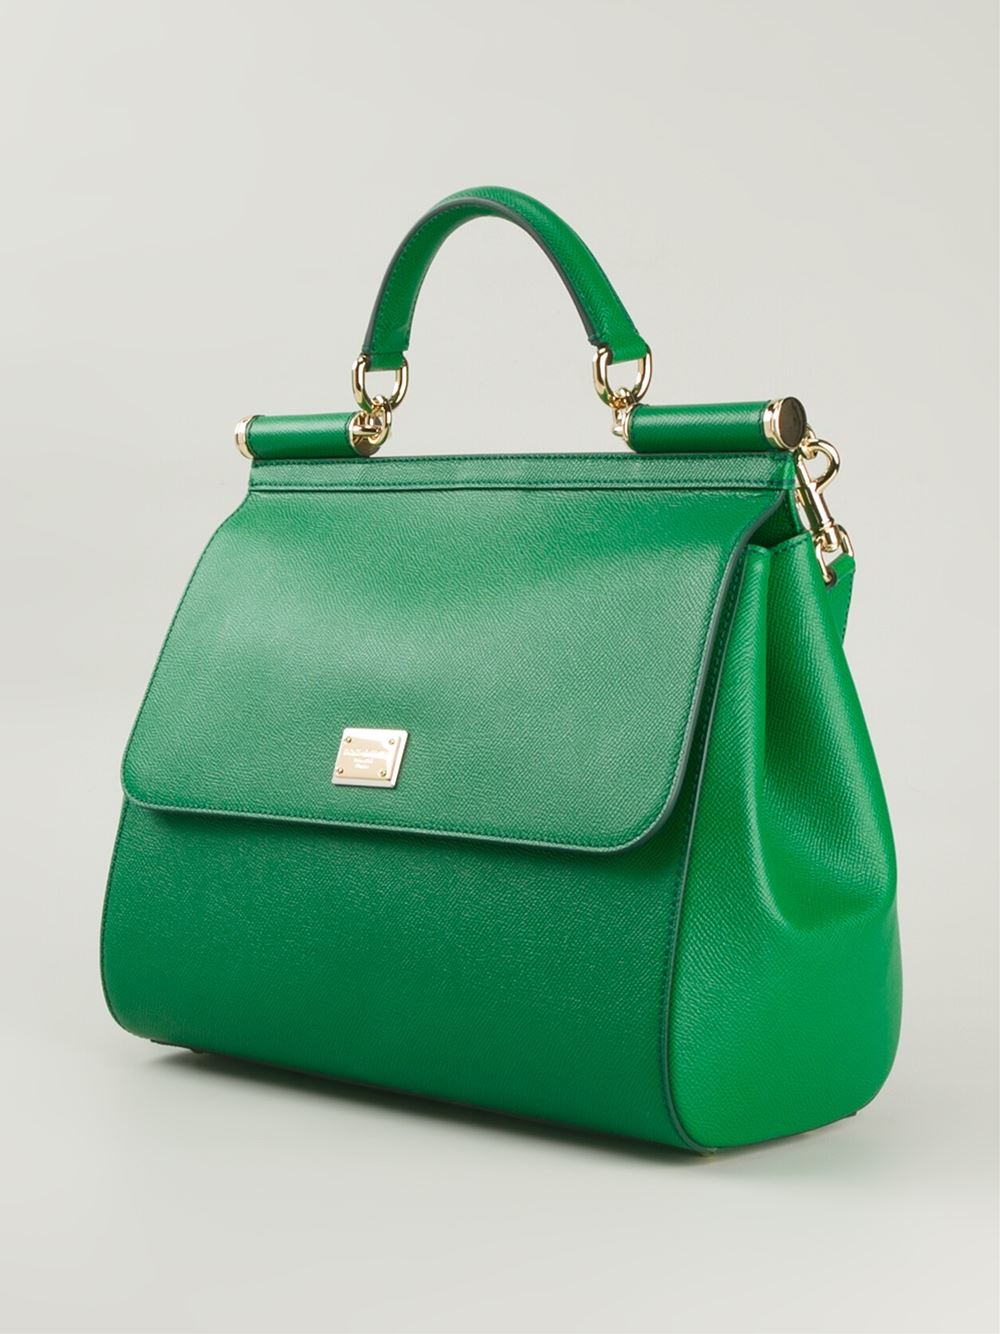 Lyst - Dolce   Gabbana Large  Sicily  Tote in Green 053b5966a2